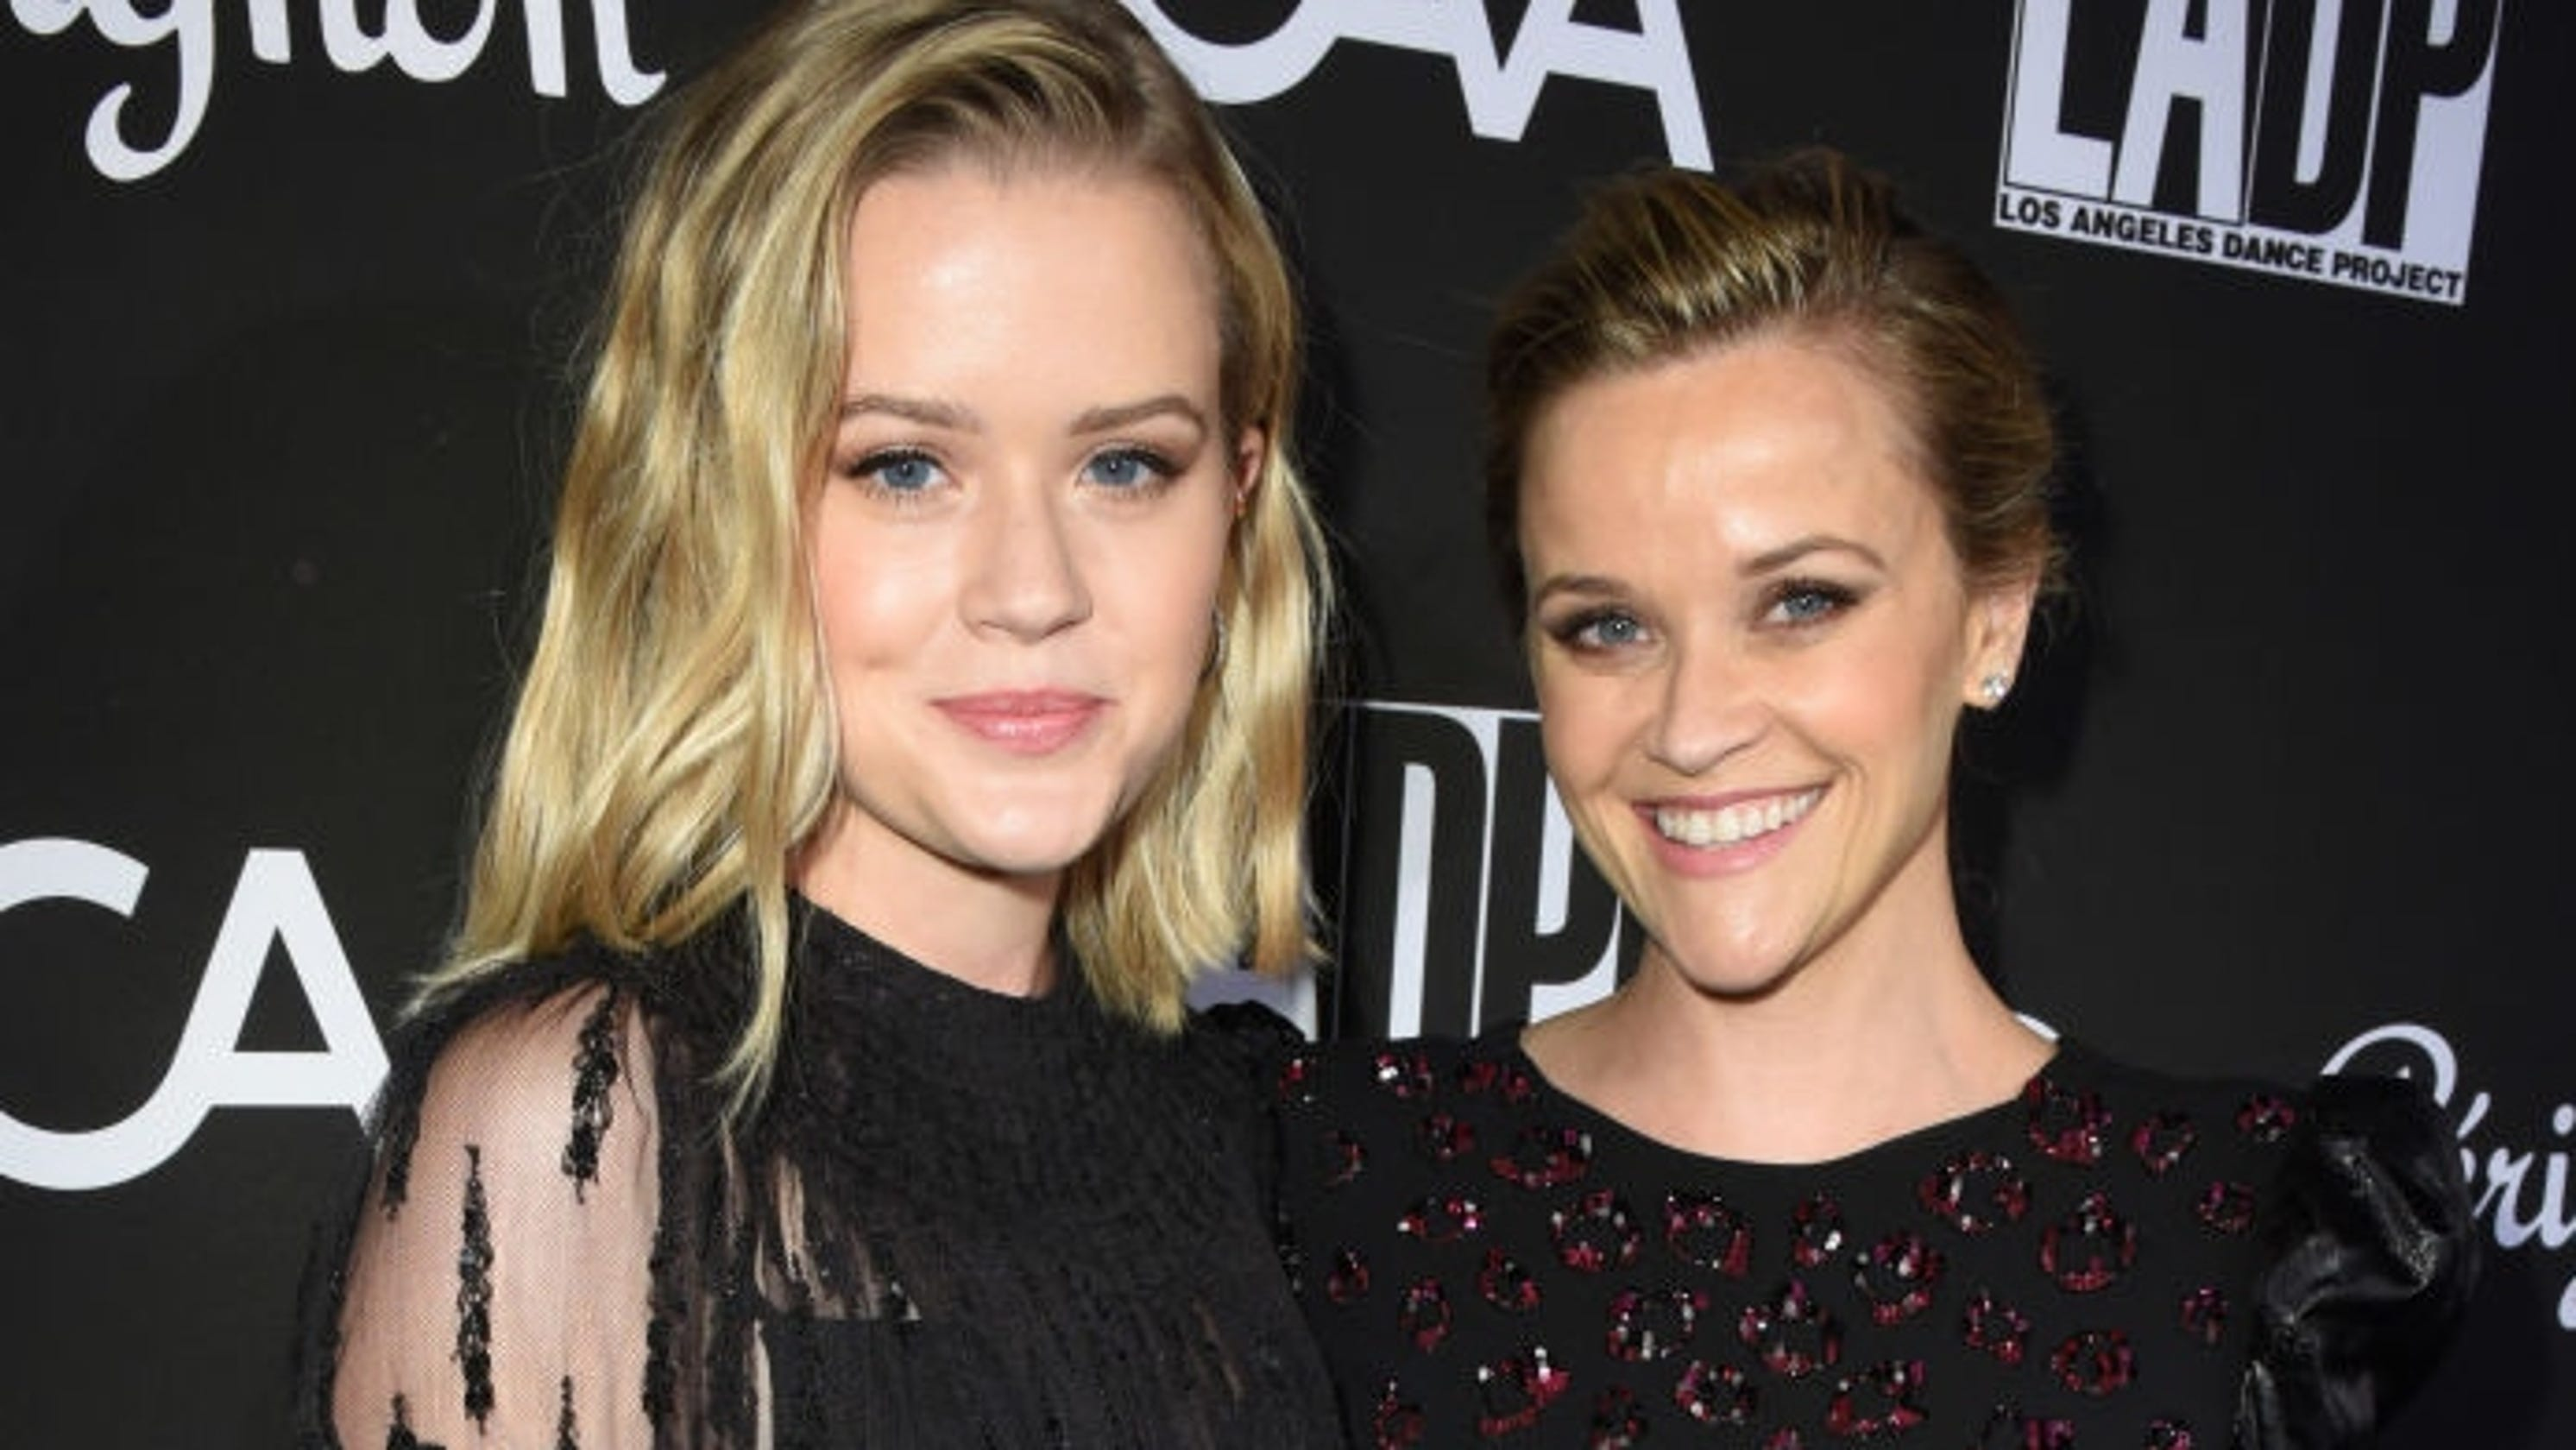 Reese Witherspoon 'laid on her bed and cried' when daughter Ava left for college